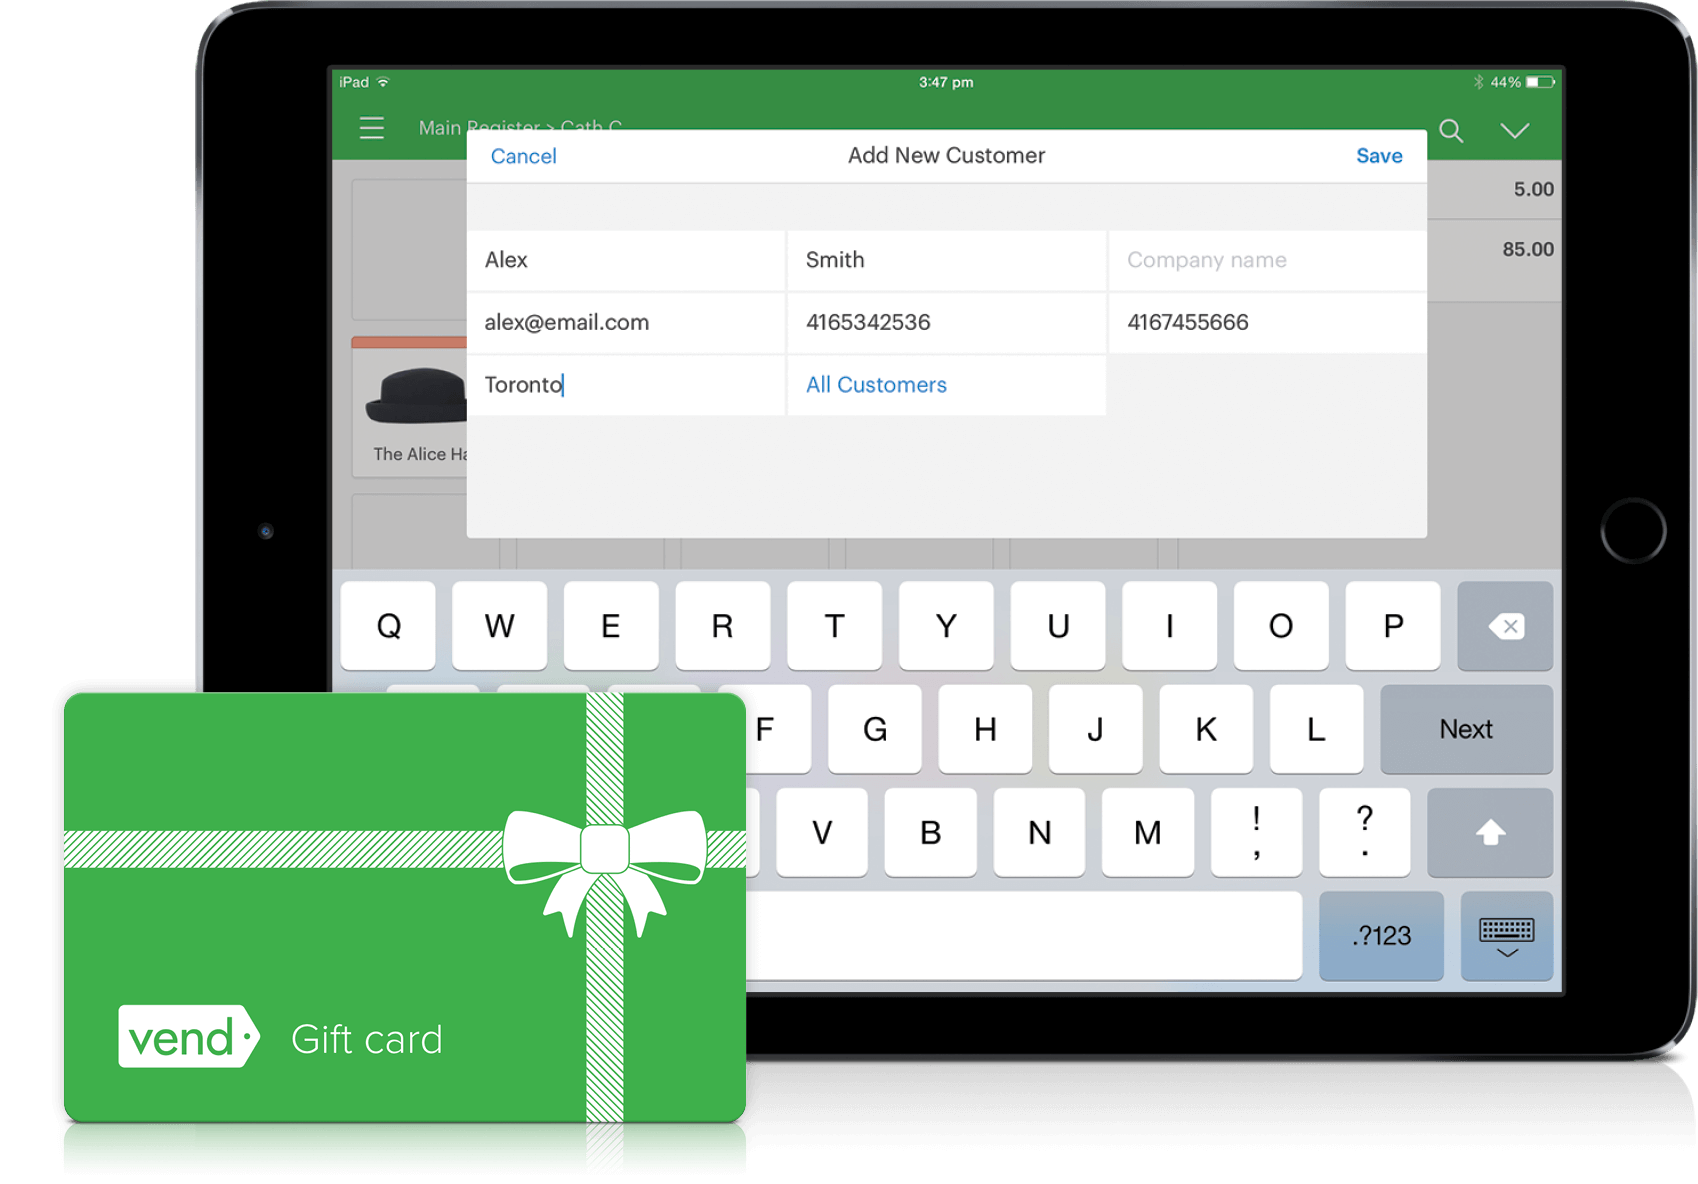 Vend POS loyalty and gift card features